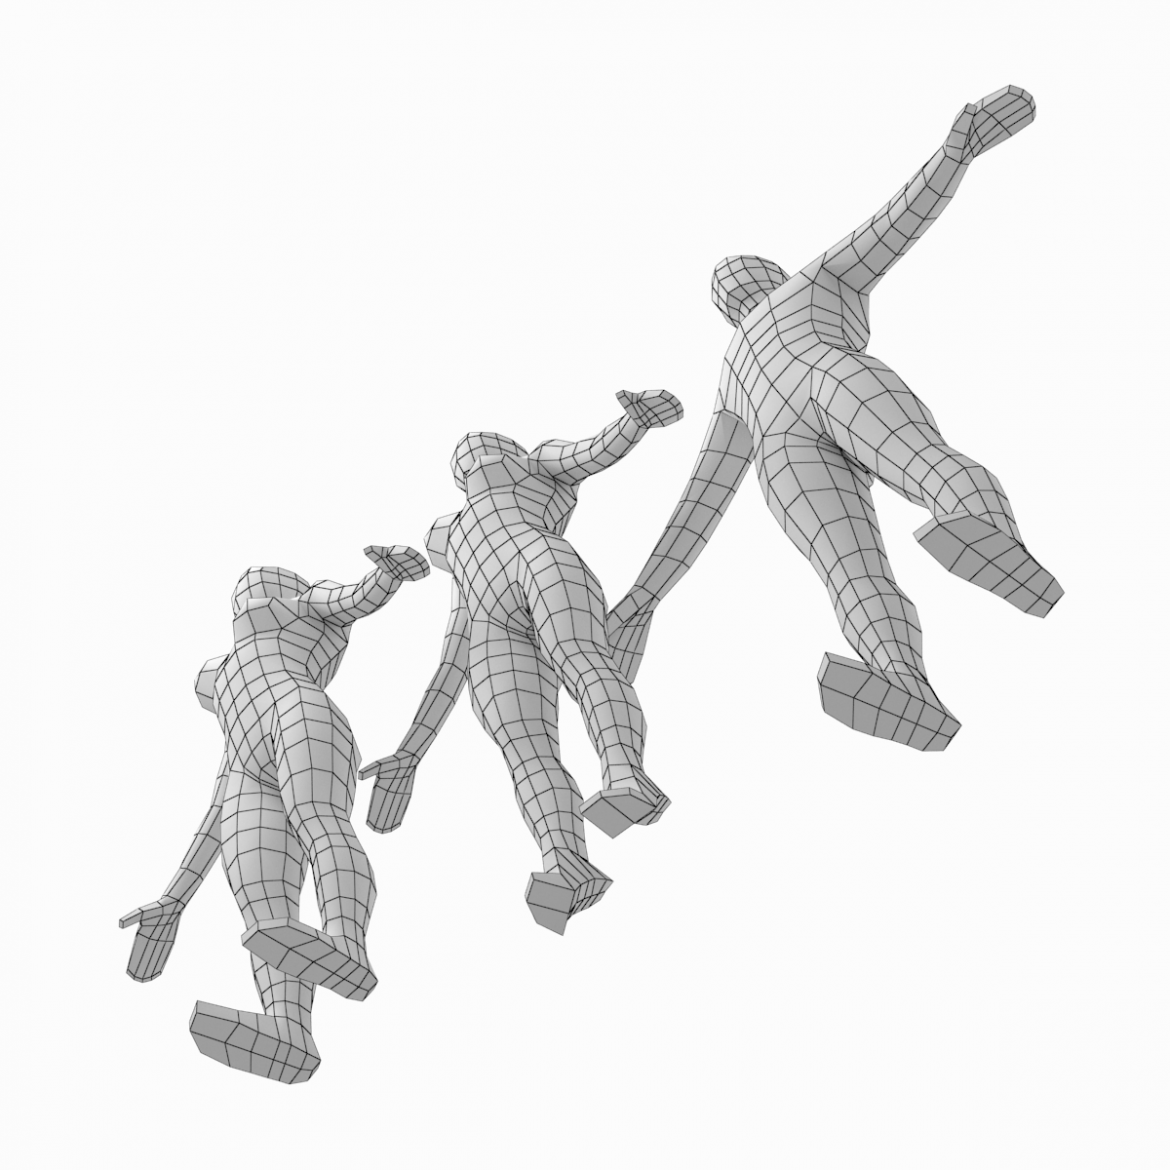 male and female low poly base mesh in a-pose 3d model 3ds max fbx c4d ma mb obj 301264